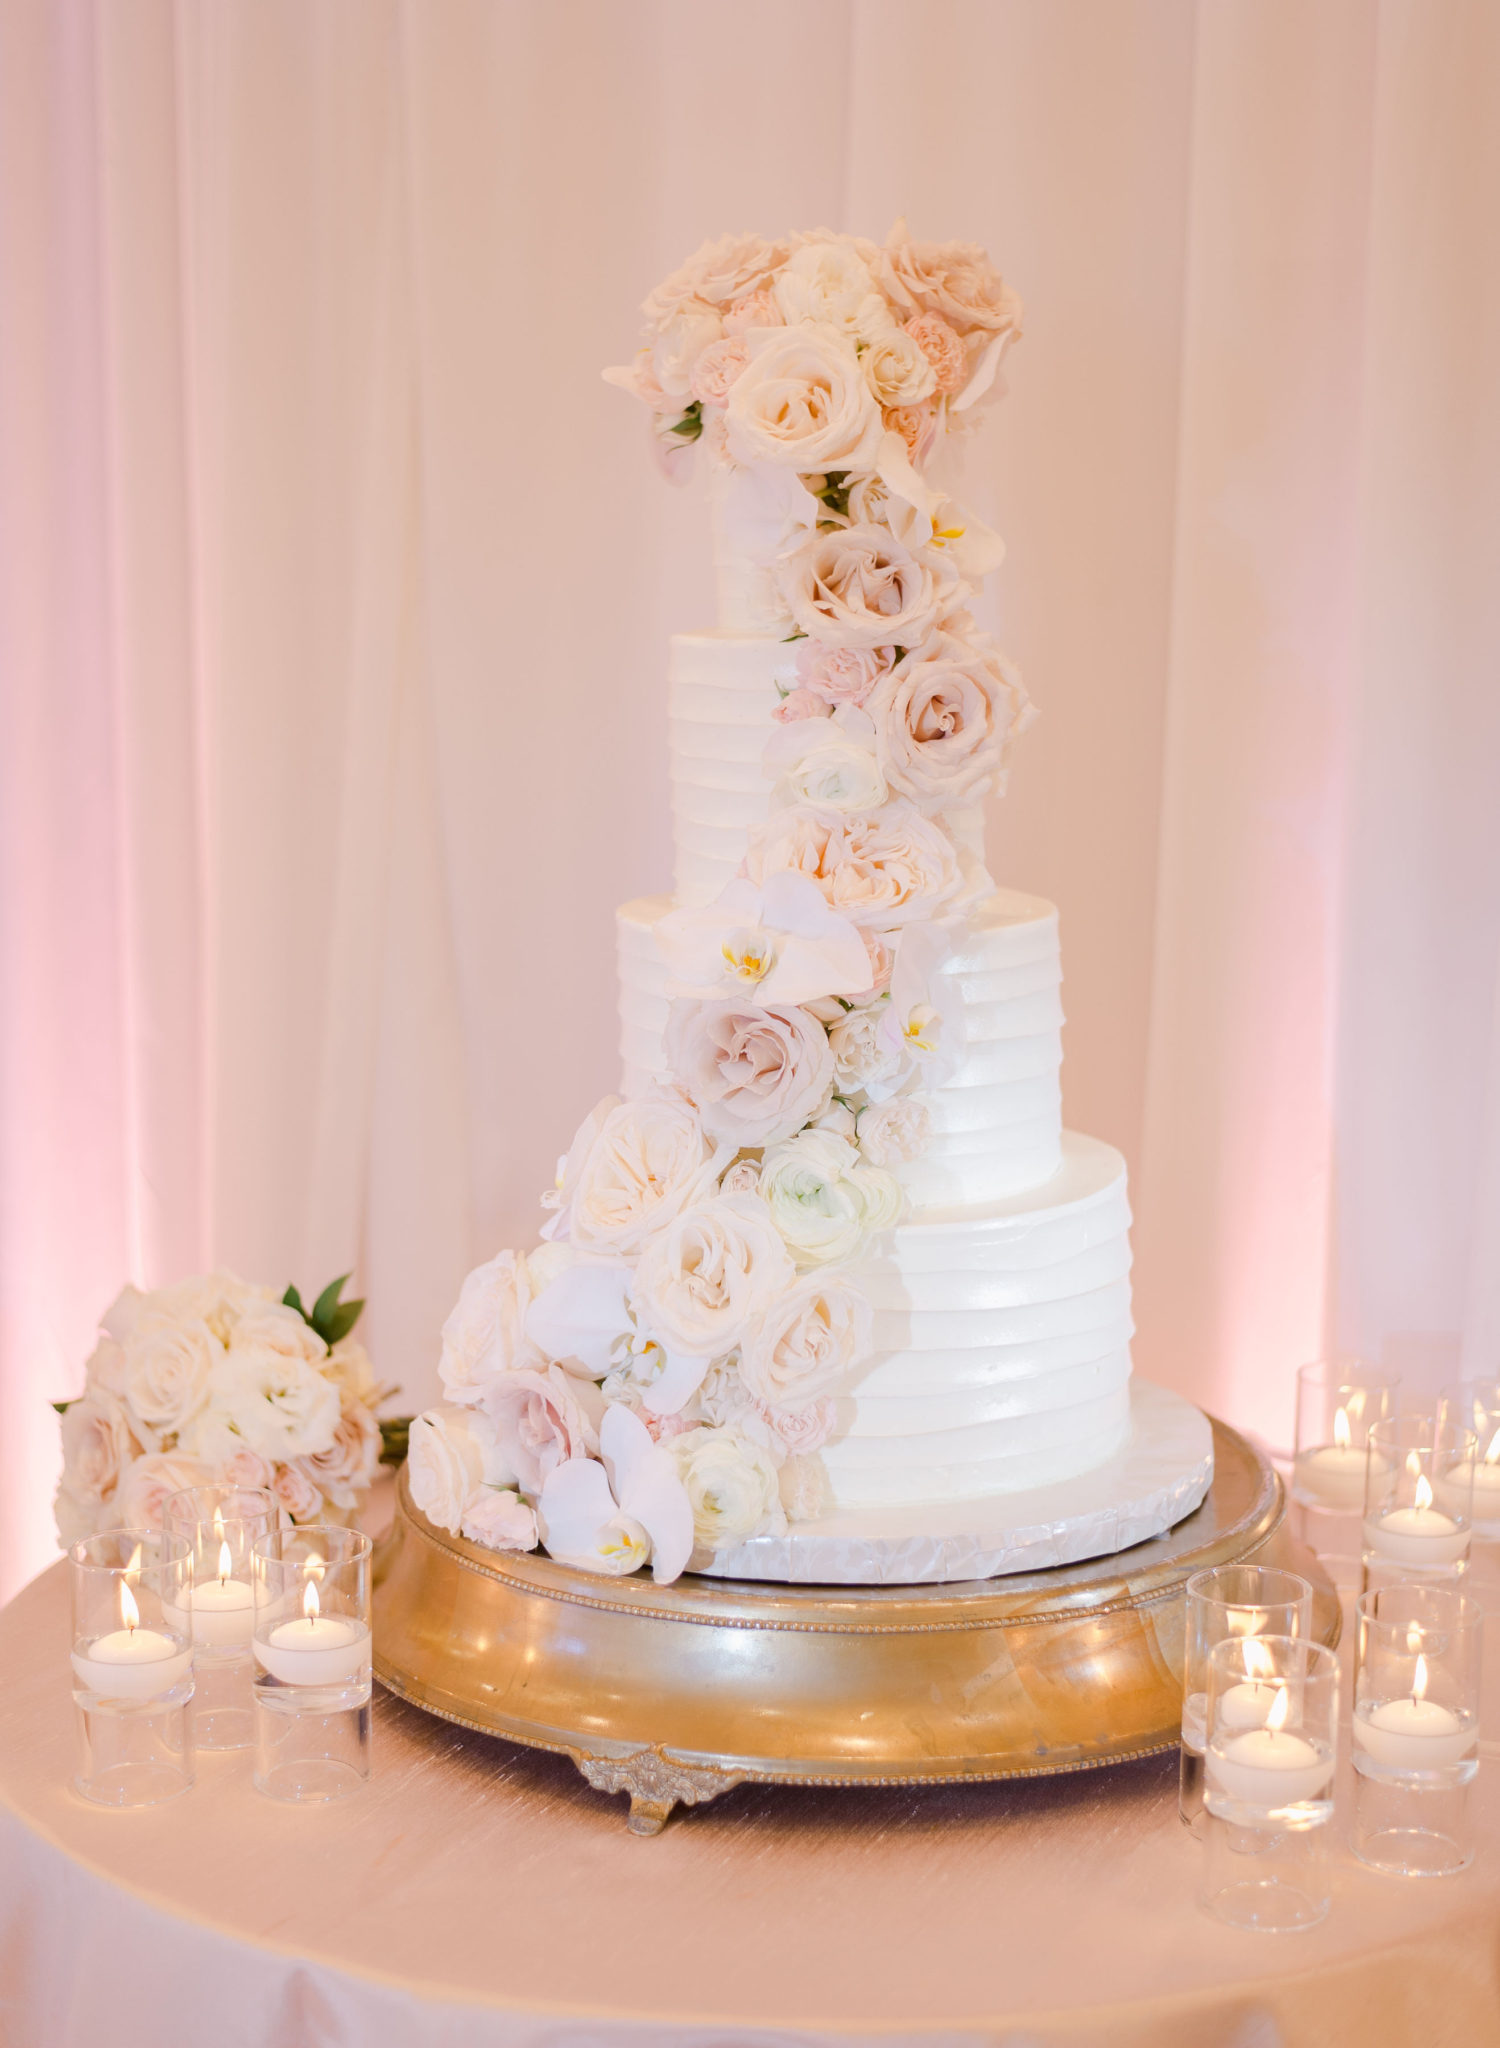 The Peninsula Beverly Hills, Events by Robin, McCune Photography, Fiske Film, Flowers By Cina, Vox DJ's, Lucky Devils Band, Julie Hiles Makeup, Val Kaye Muah, Vanilla Bake Shop, Chiavari Chair Rentals, Darla Marie Designs, Luxe Linen, Theoni Collection, Bella Ballroom